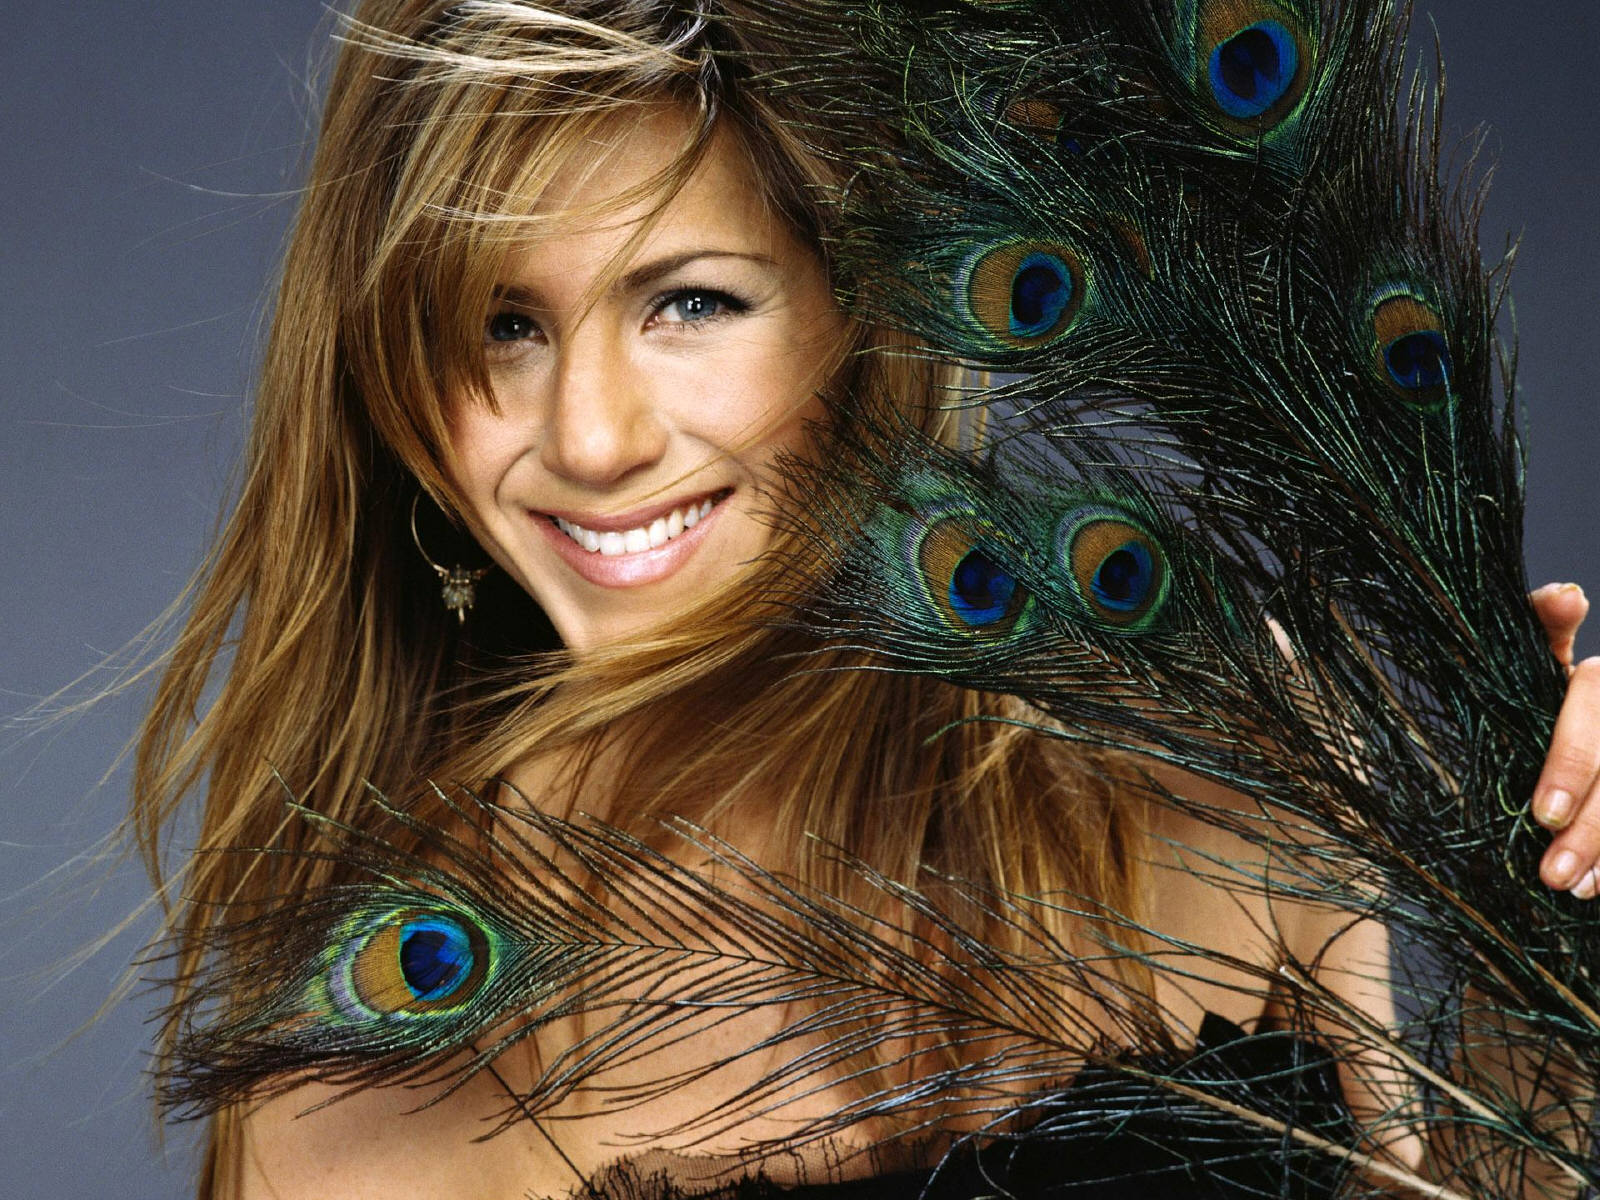 http://4.bp.blogspot.com/-egVb39XlS24/T-X3pjxem2I/AAAAAAAAFfo/iv-EPN2HuLE/s1600/wallpapers-jennifer-aniston-download-free-705913.jpg